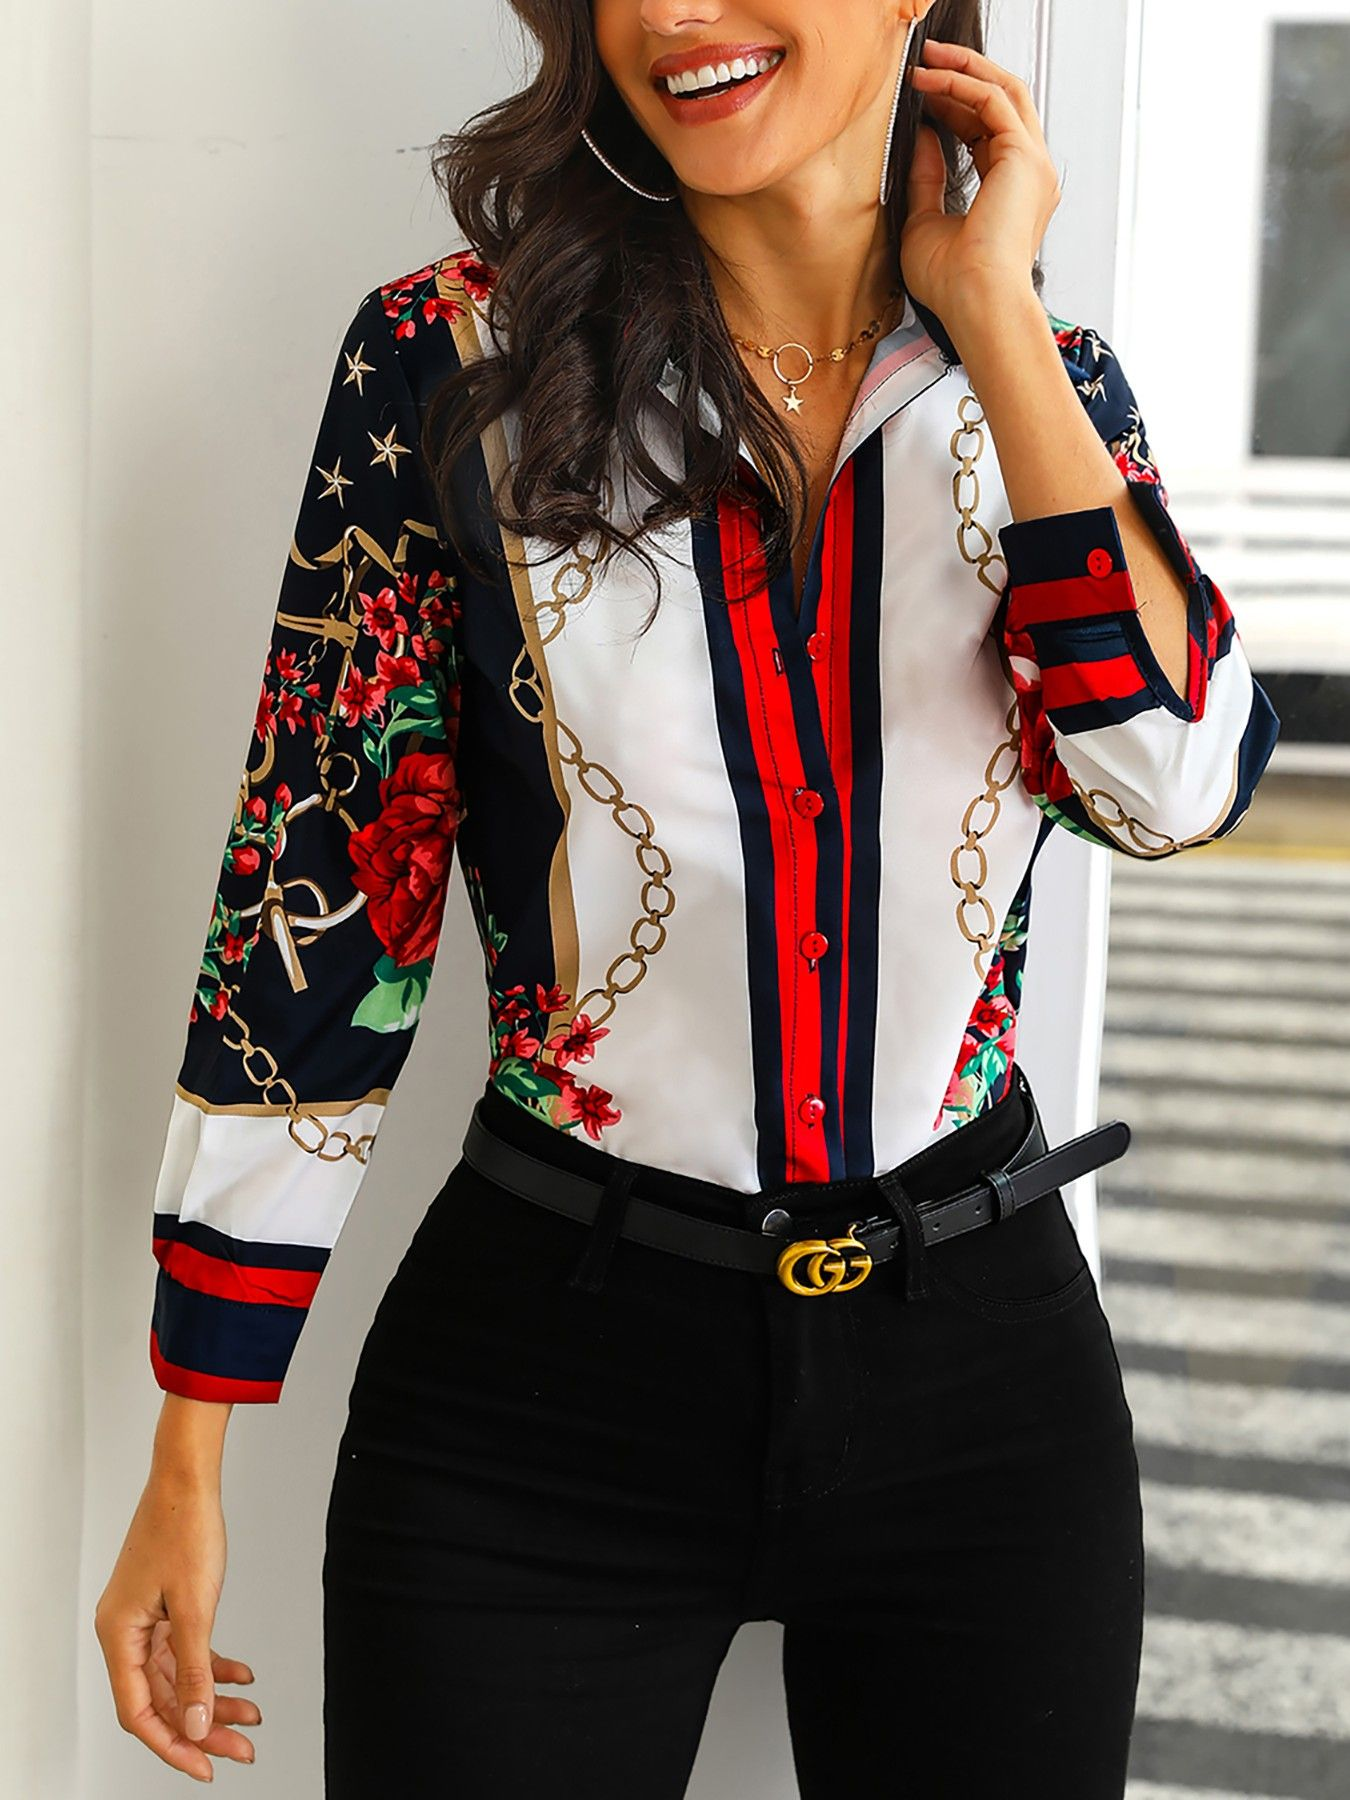 Floral Chains Print Casual Blouse Clothes For Women Casual Blouse Womens Fashion